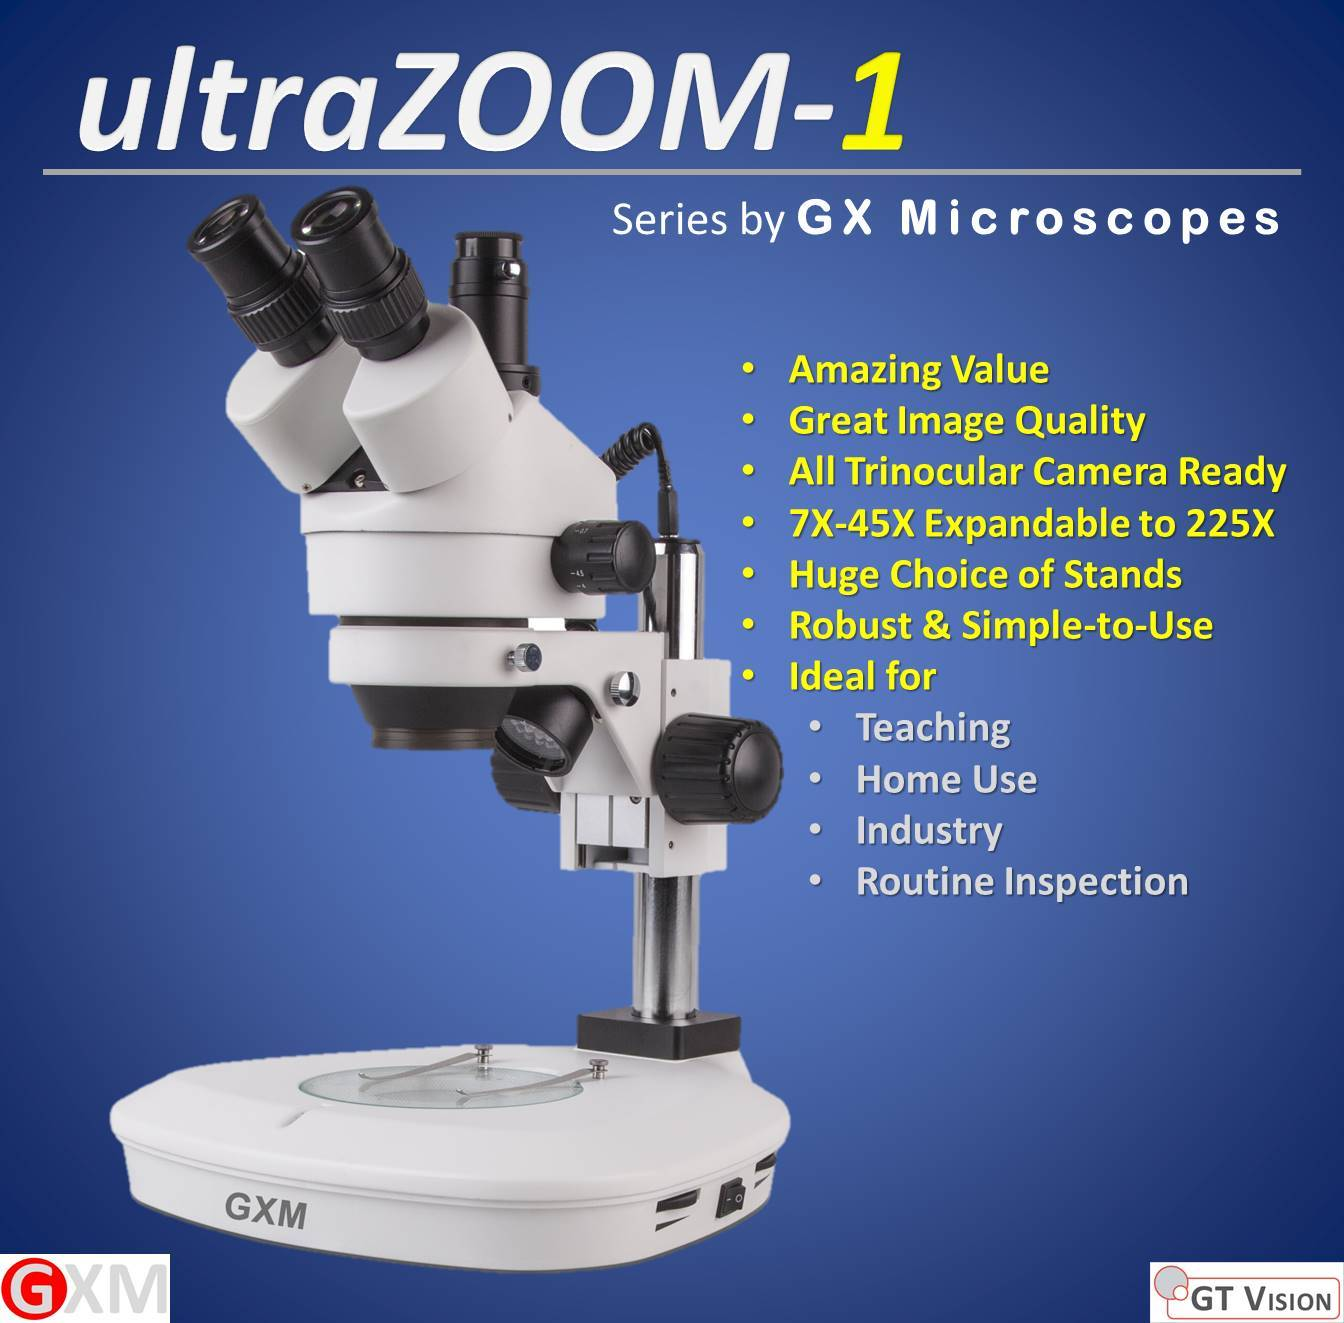 ultraZOOM-1 Stereo Zoom Microscope by GT Vision